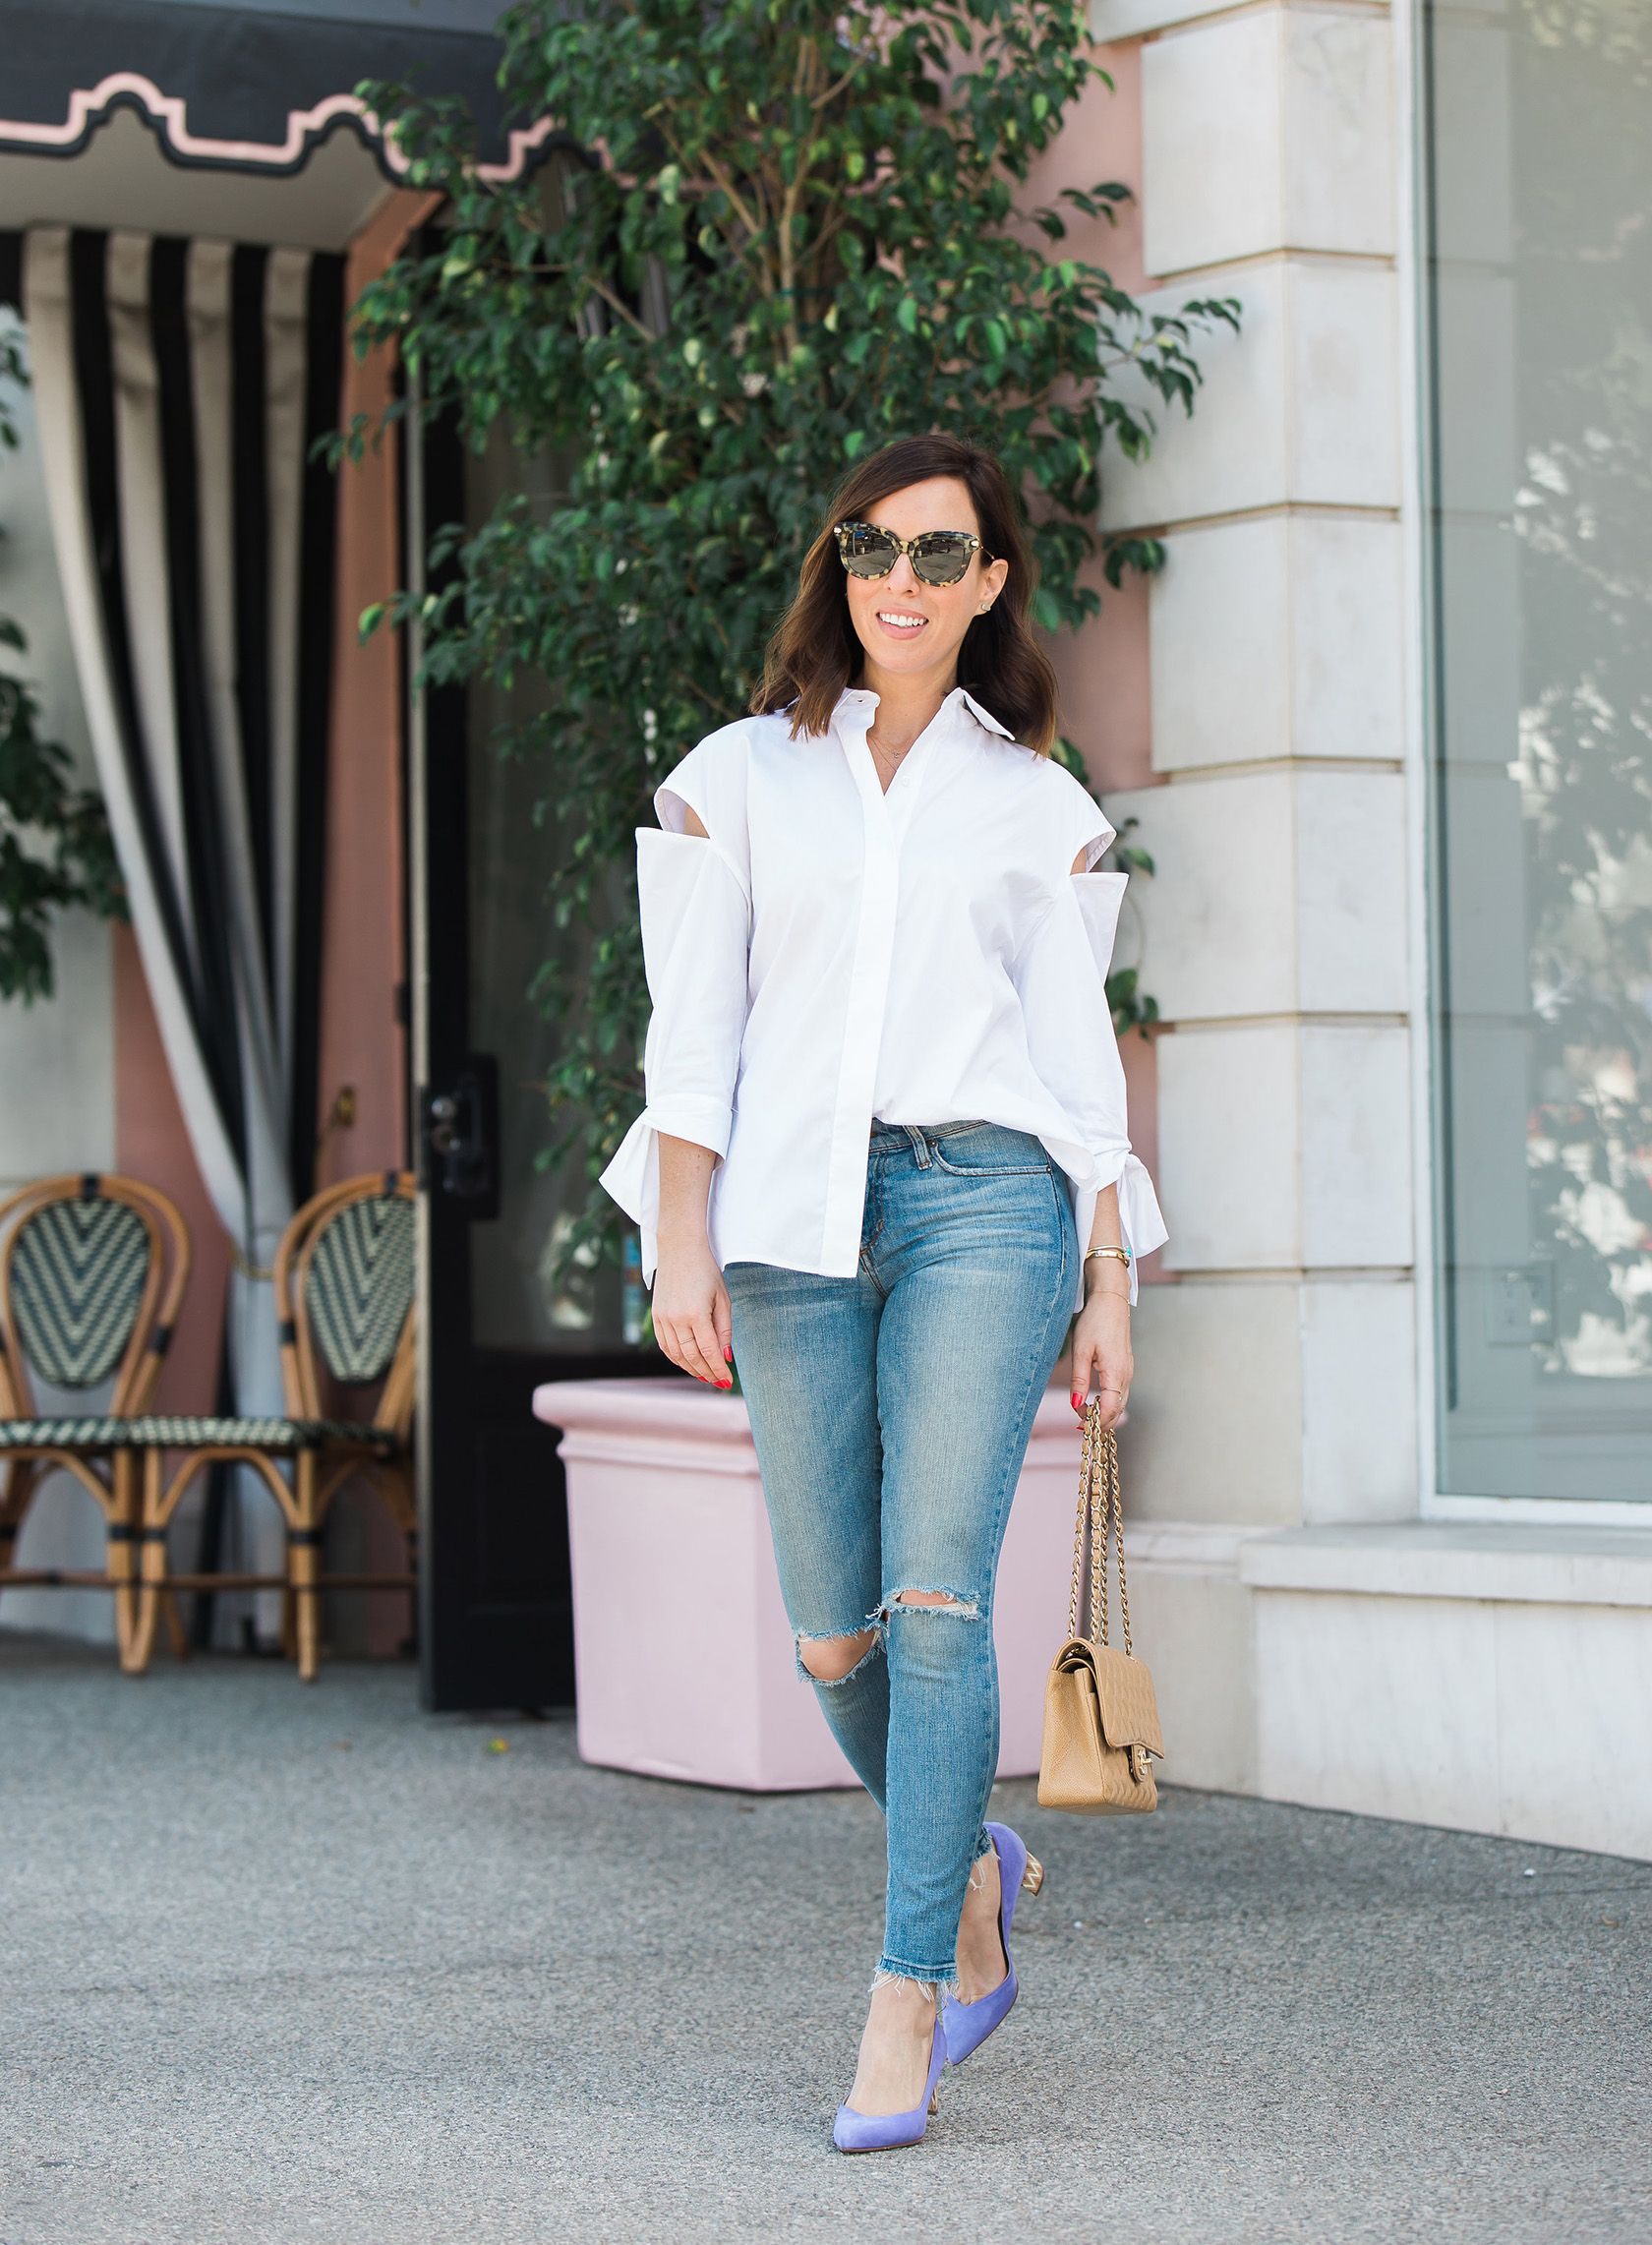 4129c9cfcb78 Sydne Style shows how to wear a white button down and jeans like Meghan  Markle #whiteshirt #whitebuttondown #jeans #skinnyjeans #lavender #purple  #chanelbag ...